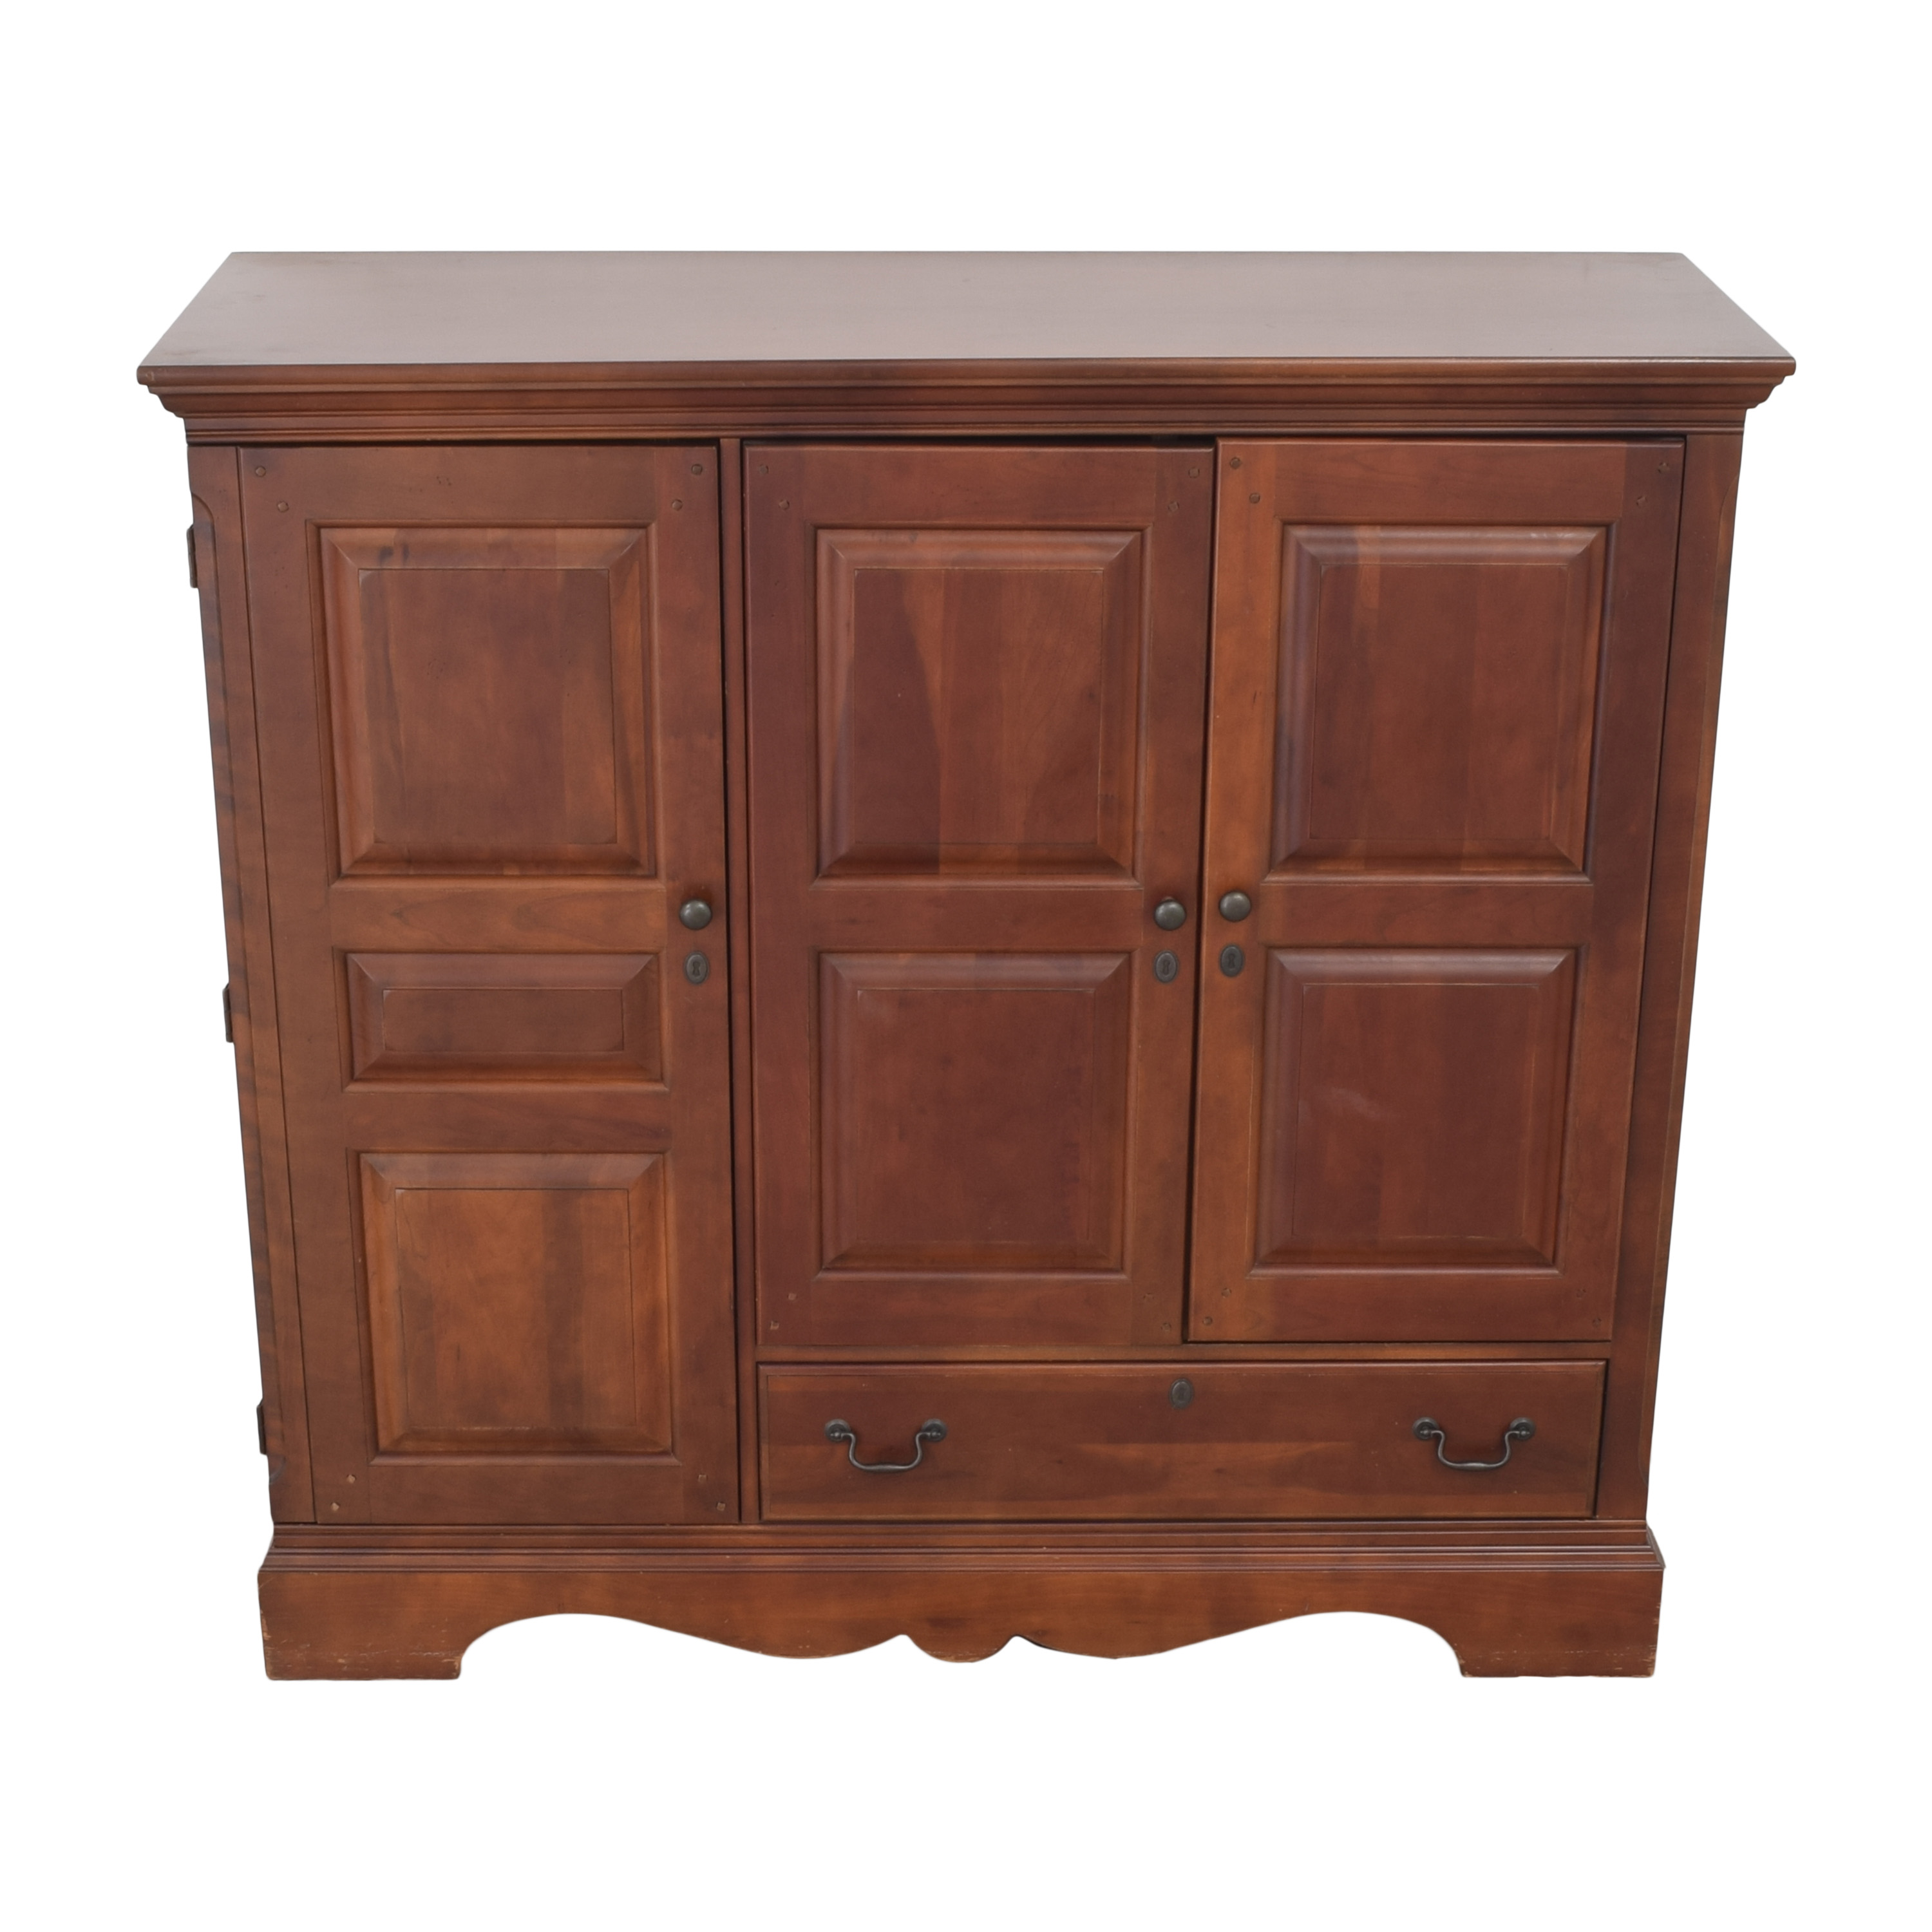 Macy's Macy's Entertainment Center Cabinet brown